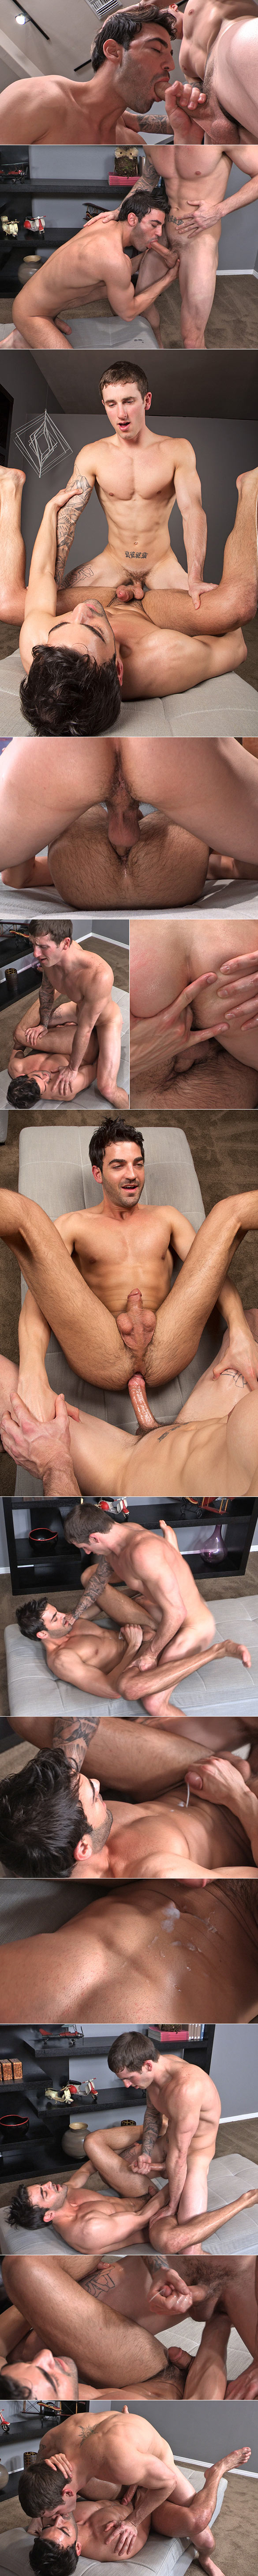 SeanCody: Peter barebacks Troy